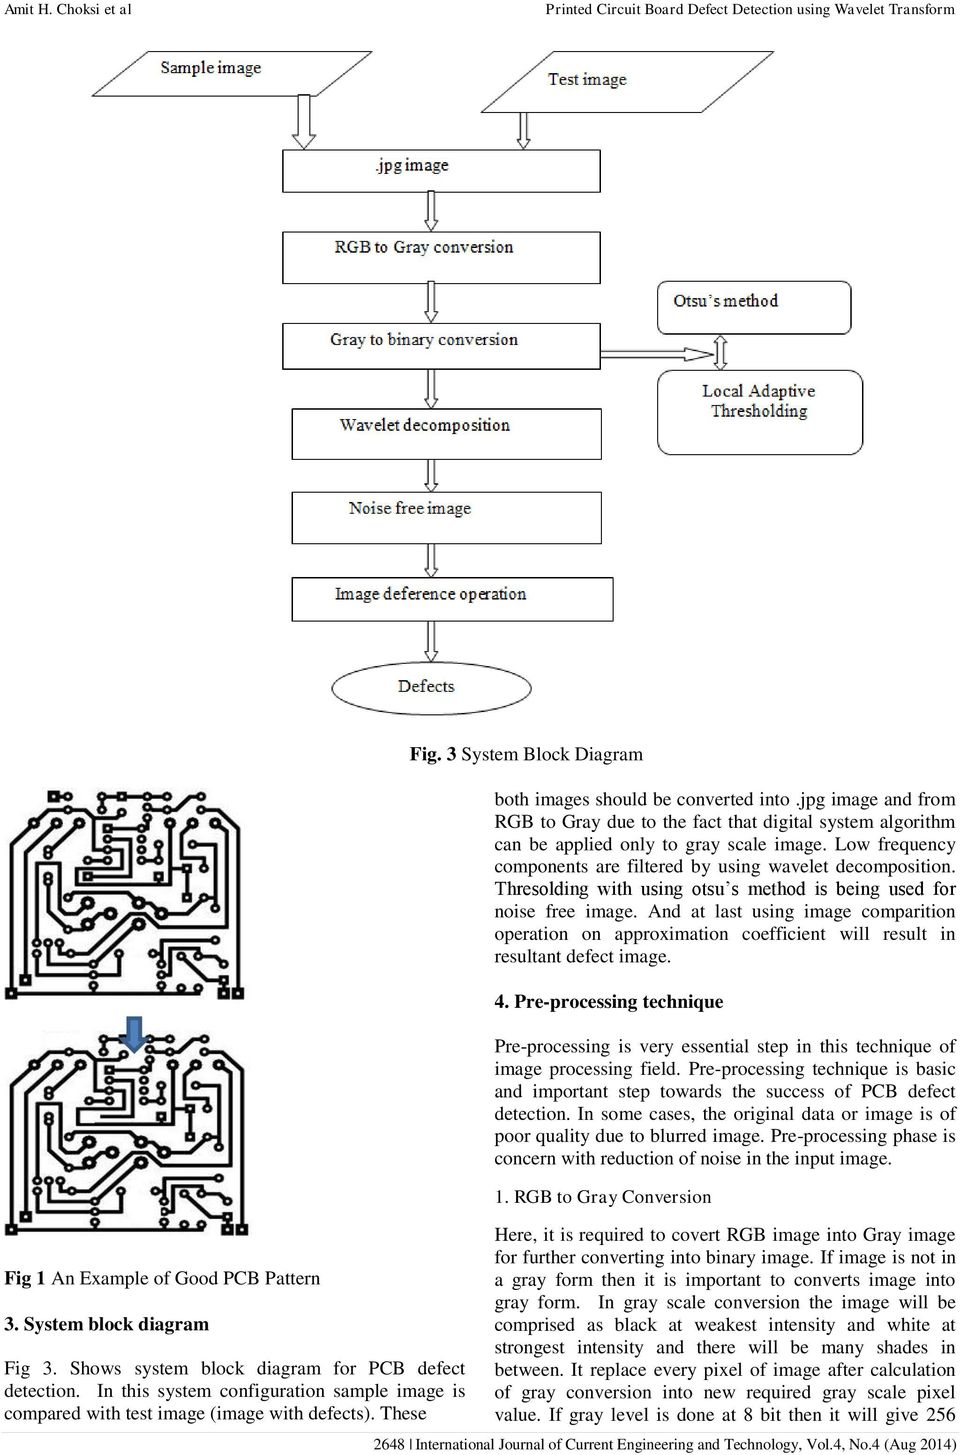 Printed Circuit Board Defect Detection Using Wavelet Transform Pdf High Res Jpeg Of A With Binary Codes As The Background Image And From Rgb To Gray Due Fact That Digital System Algorithm Can